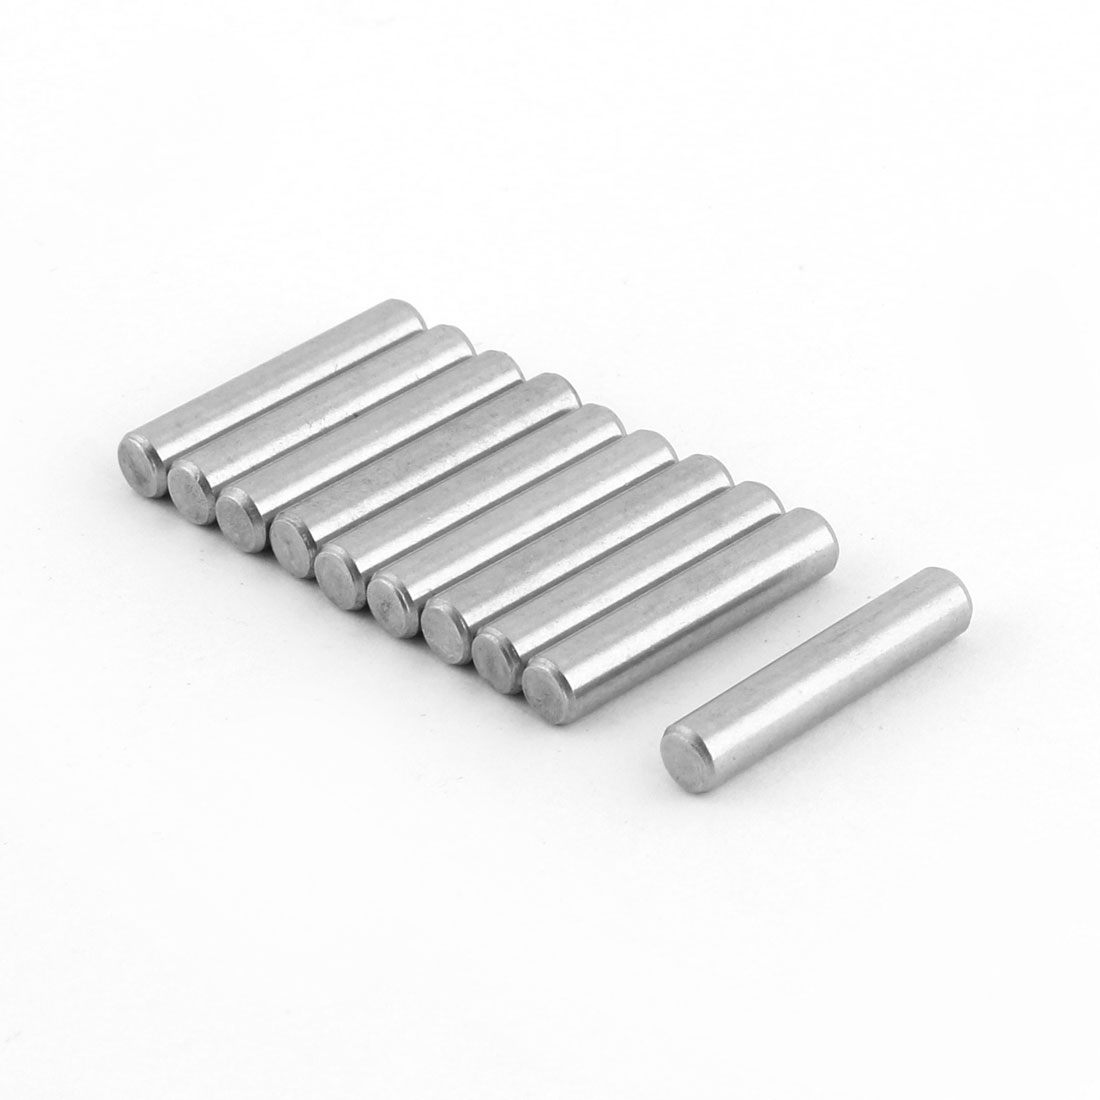 304 Stainless Steel Round Solid Dowel Pins Fastener Elements 5mm Diameter 25mm Length 10 Pcs